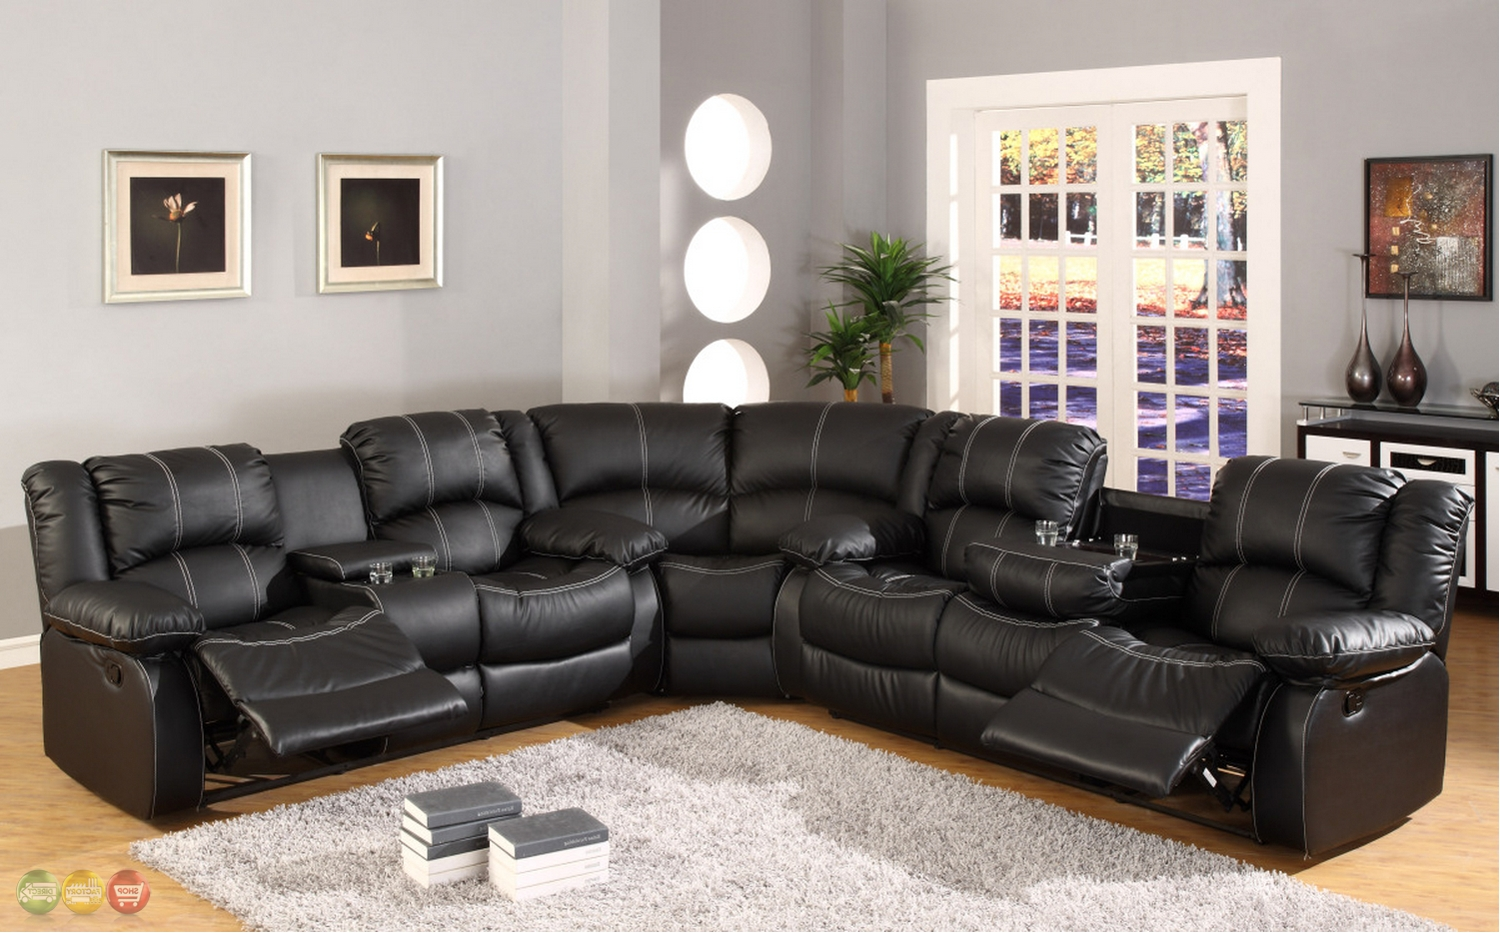 2019 Black Faux Leather Reclining Motion Sectional Sofa W/ Storage For Motion Sectional Sofas (View 8 of 20)